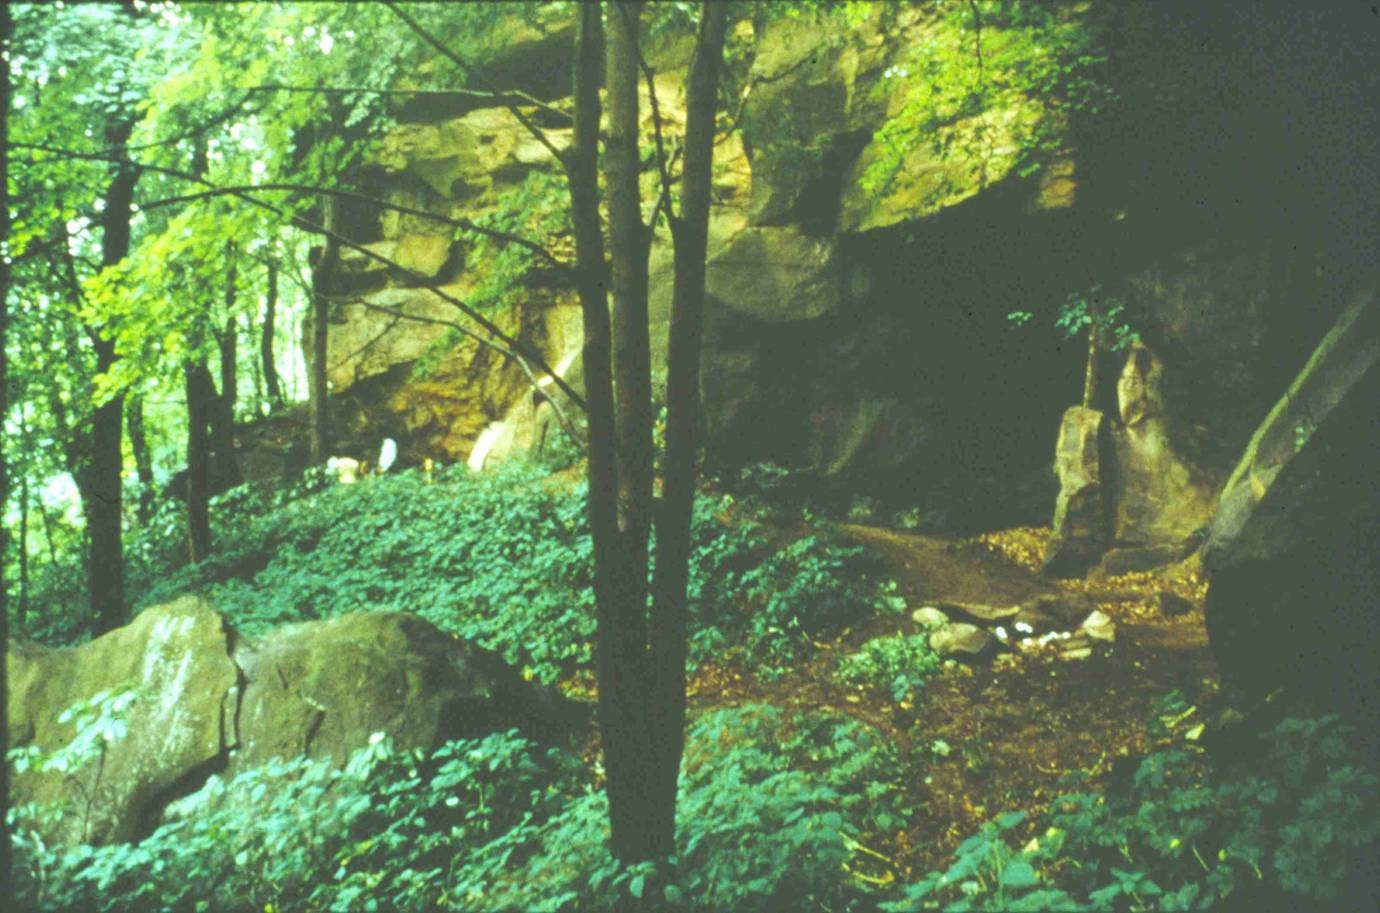 Meadowcroft Rockshelter in 1973 prior to excavation.